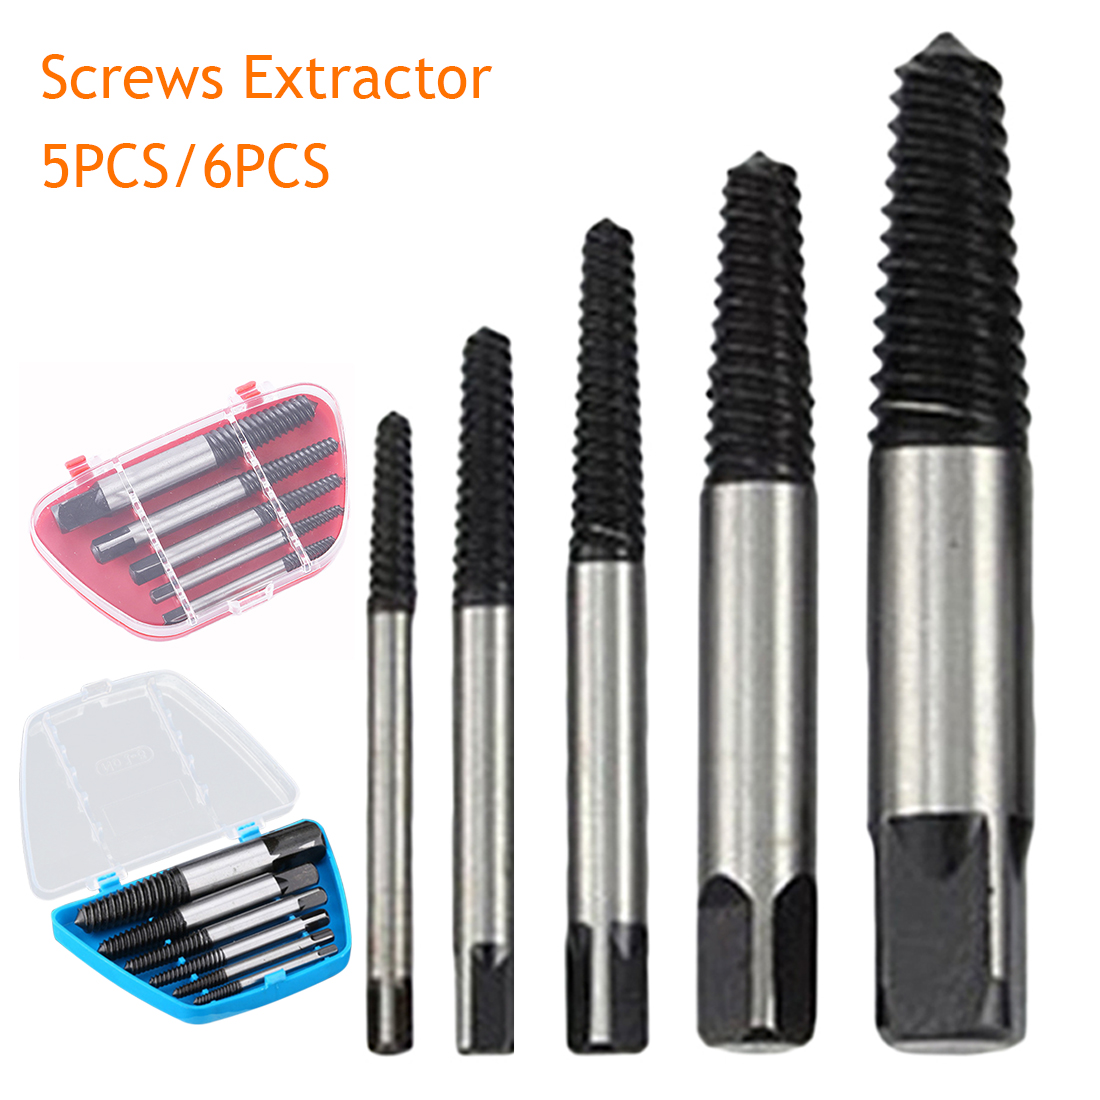 5Pcs Carbon Steel Broken Speed Out Damaged Screw Extractor Drill Bit Guide Set Broken Bolt Remover Easy Out Set